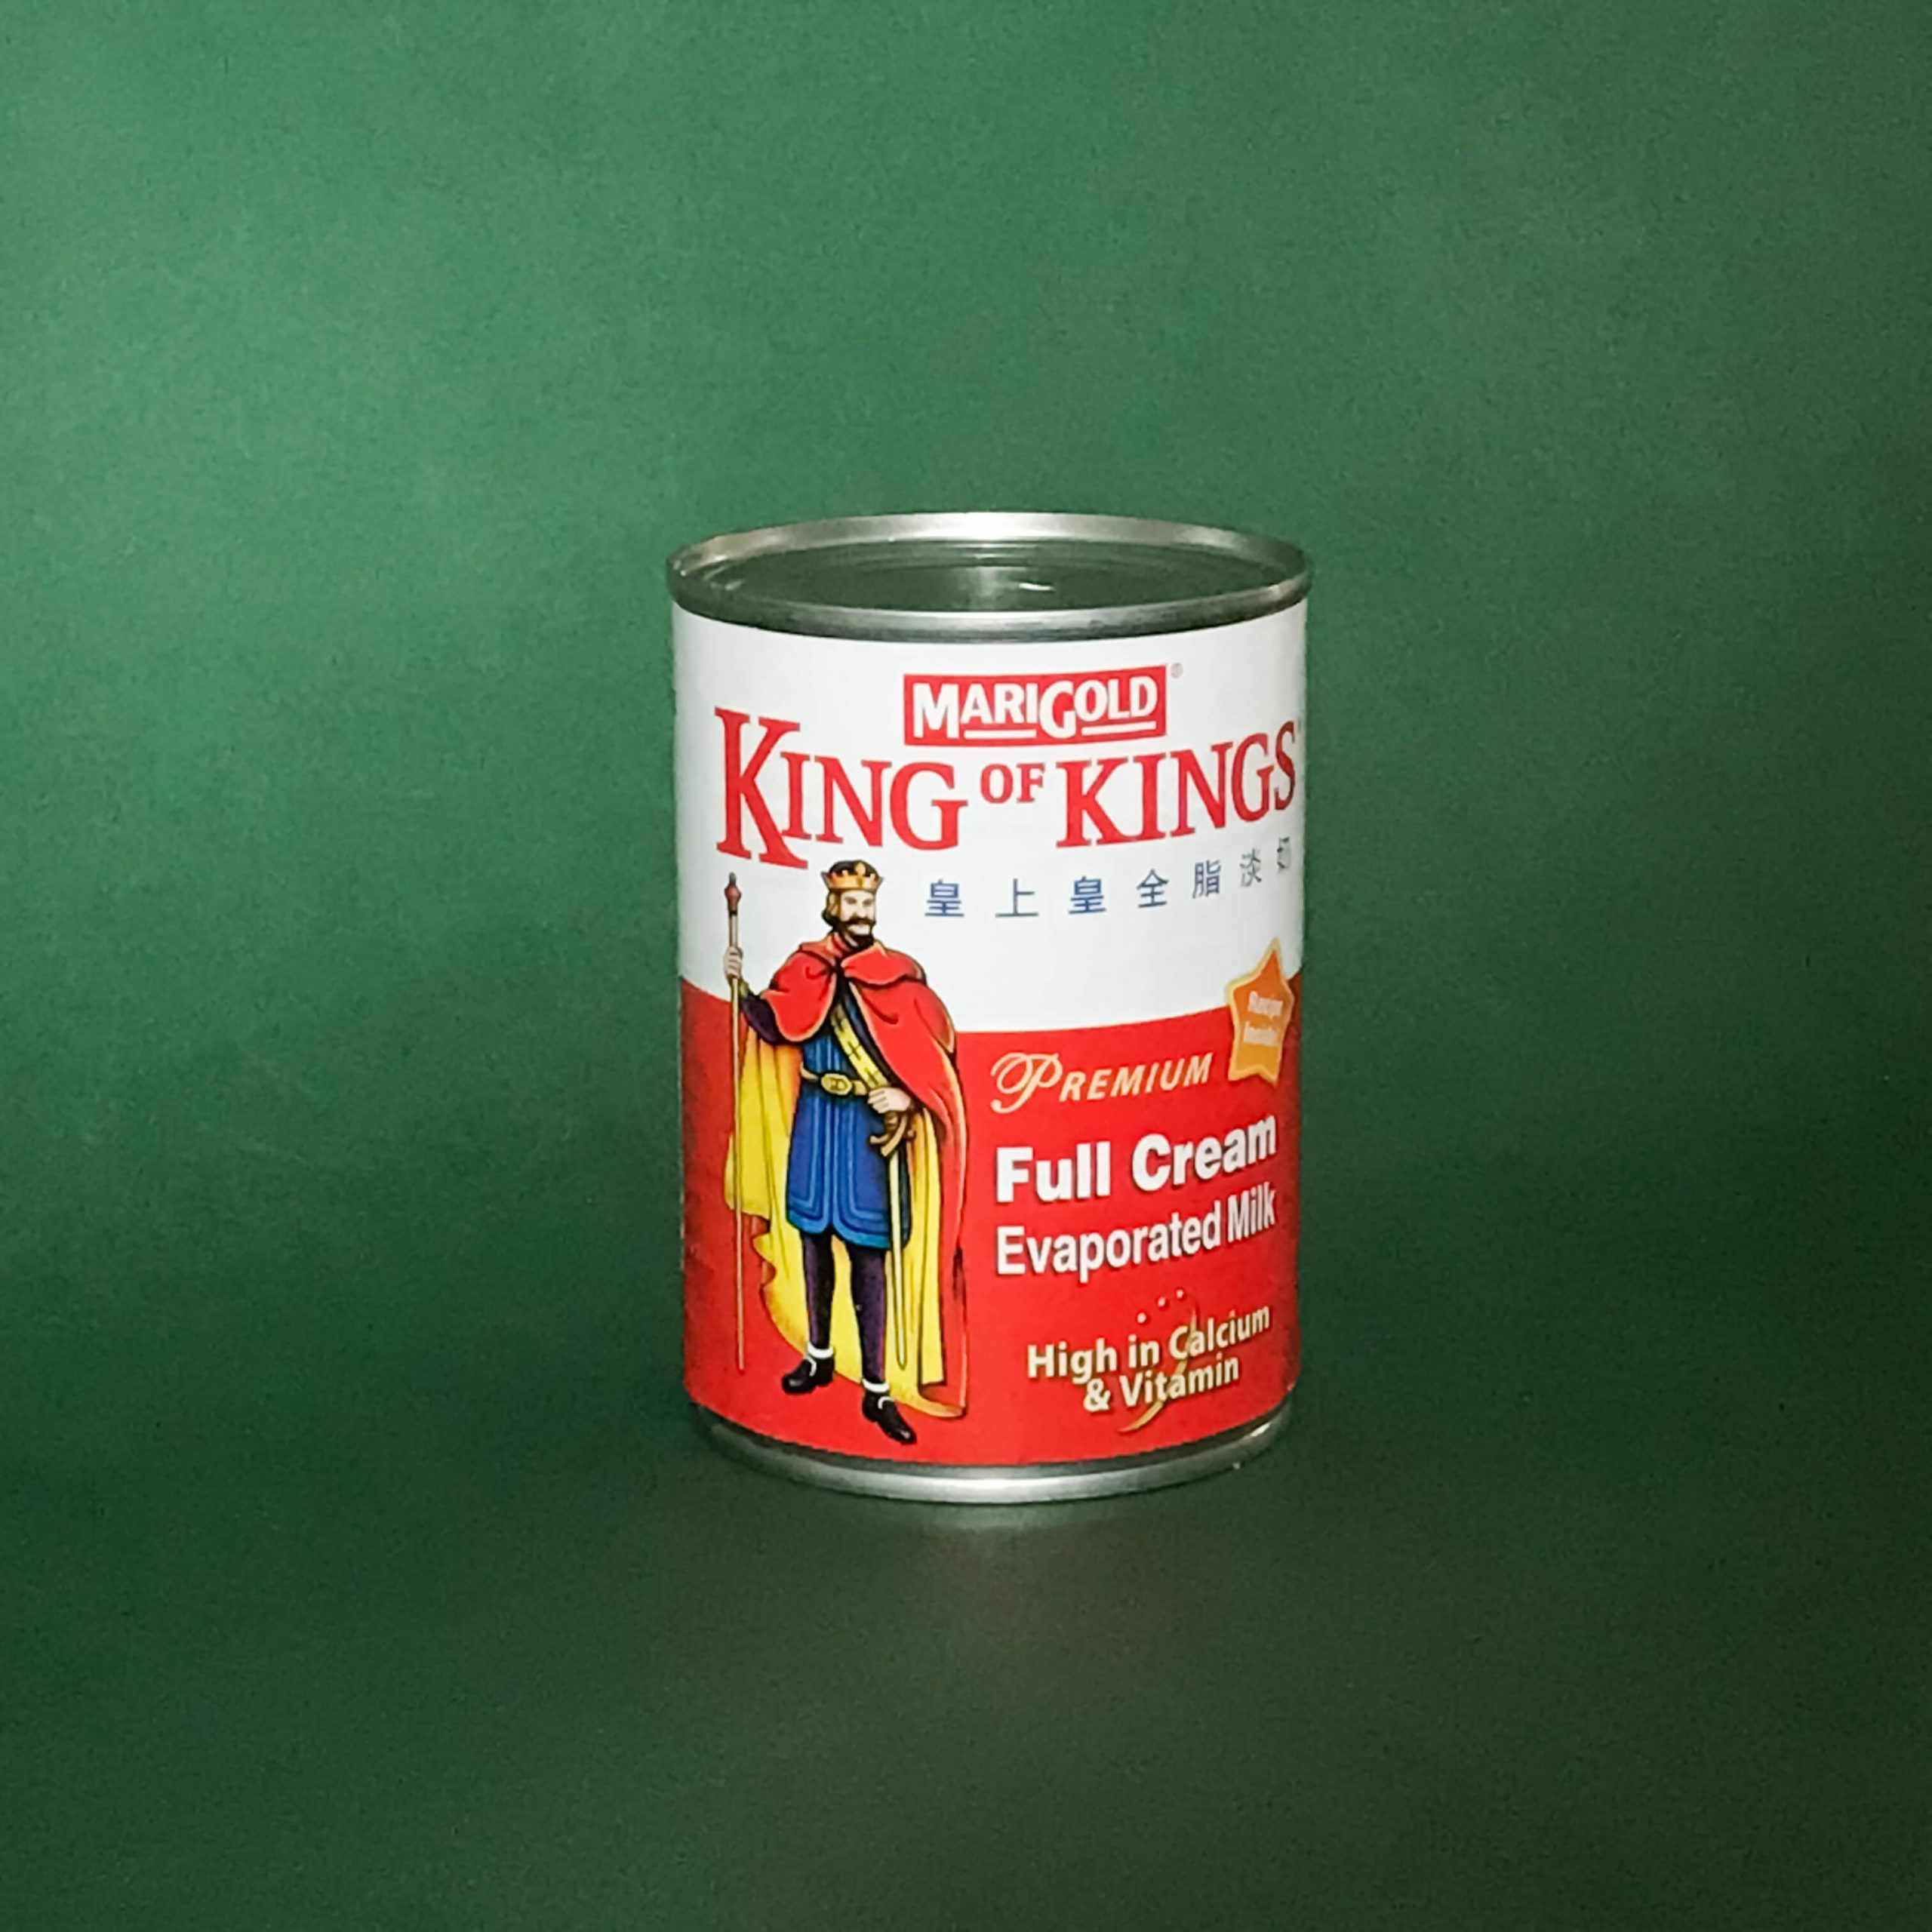 A can of Marigold King of Kings Full Cream Evaporated Milk.